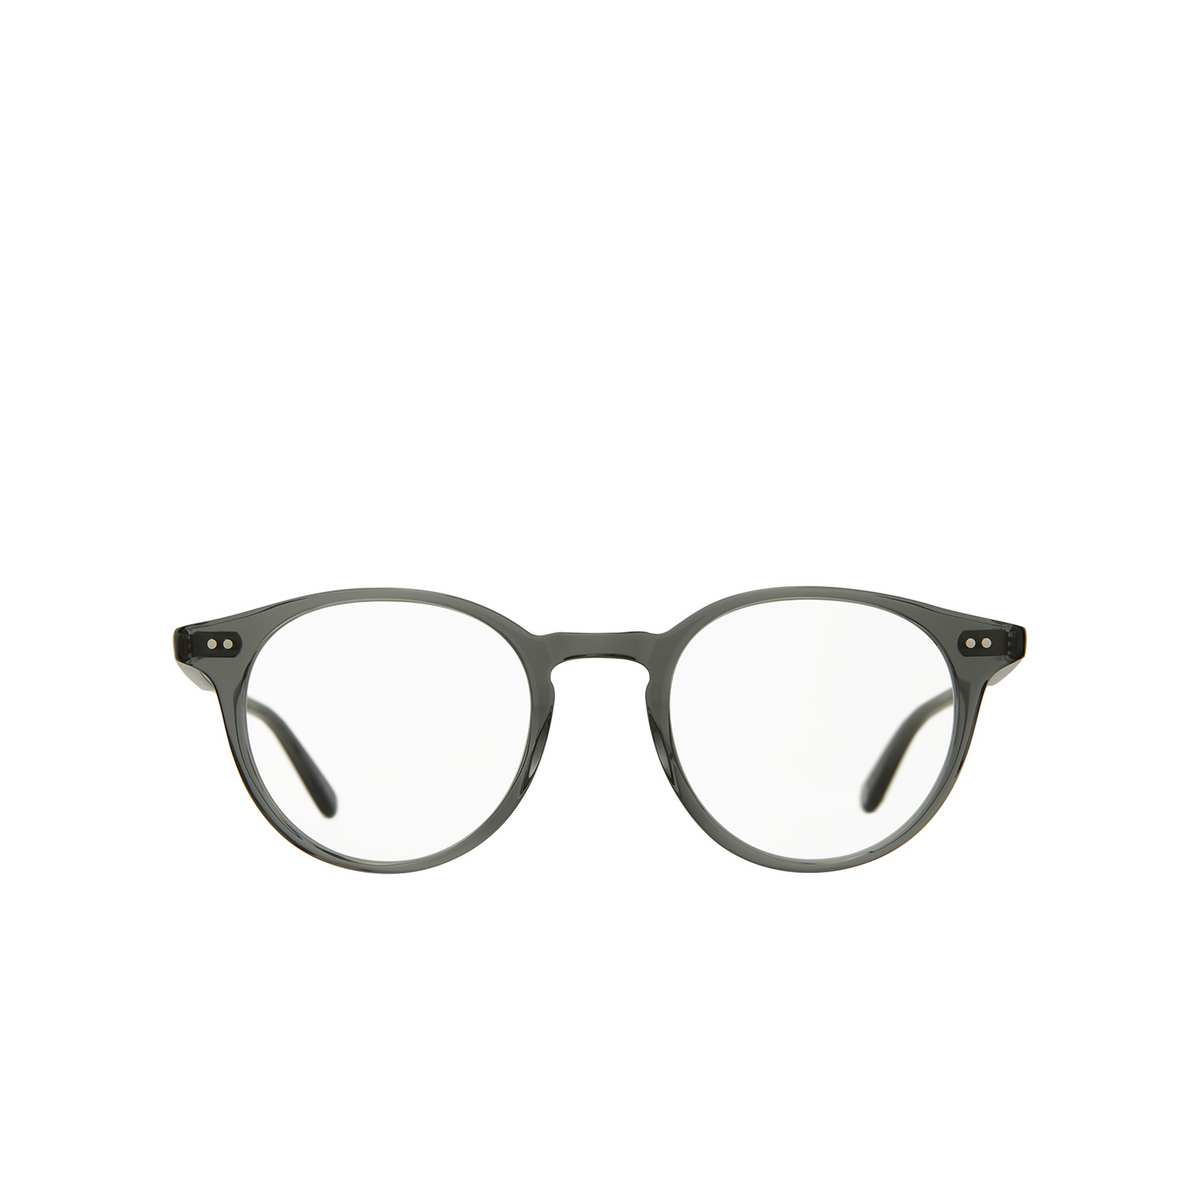 Garrett Leight® Round Eyeglasses: Clune color Sea Grey Sgy - front view.